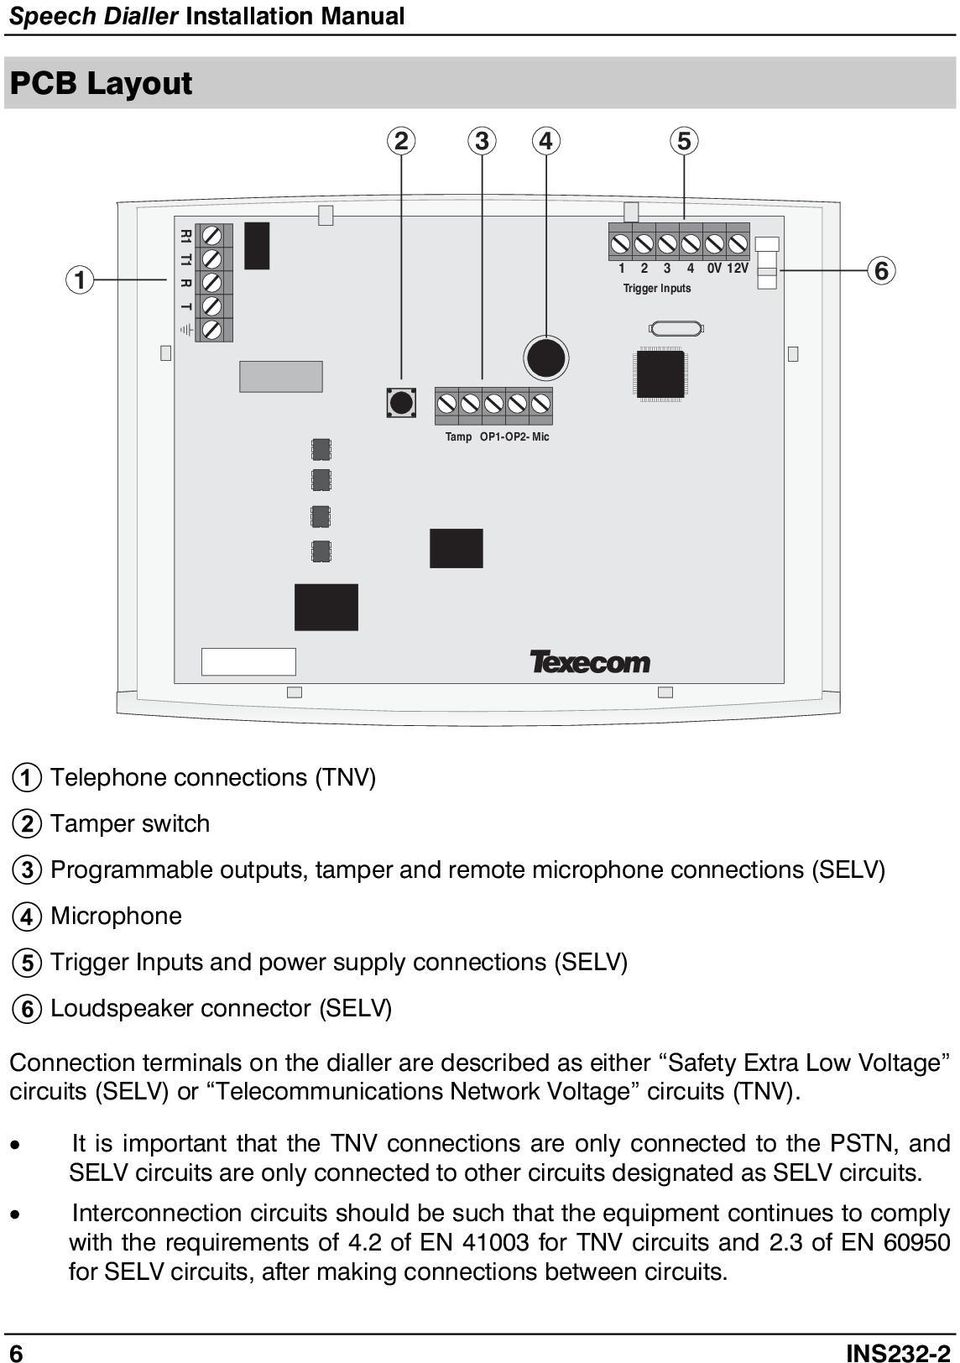 hight resolution of circuits tnv it is imptant that the tnv connections are only connected to 7 connections to the control panel speech dialler installation manual